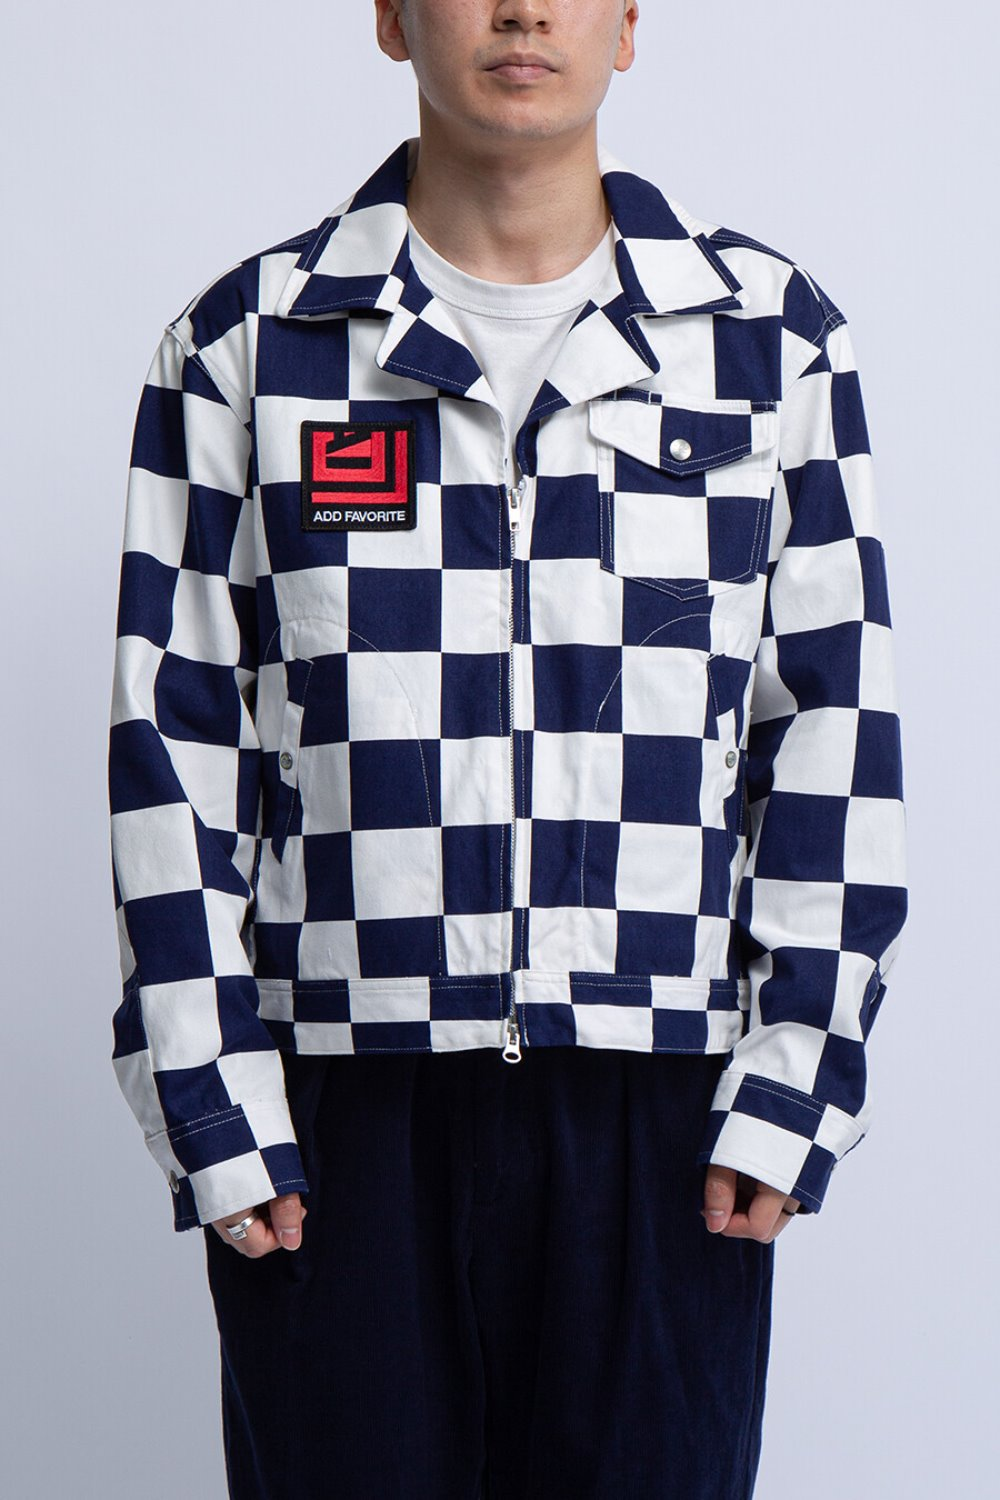 LTB JACKET NAVY WHITE 9oz CHECKER